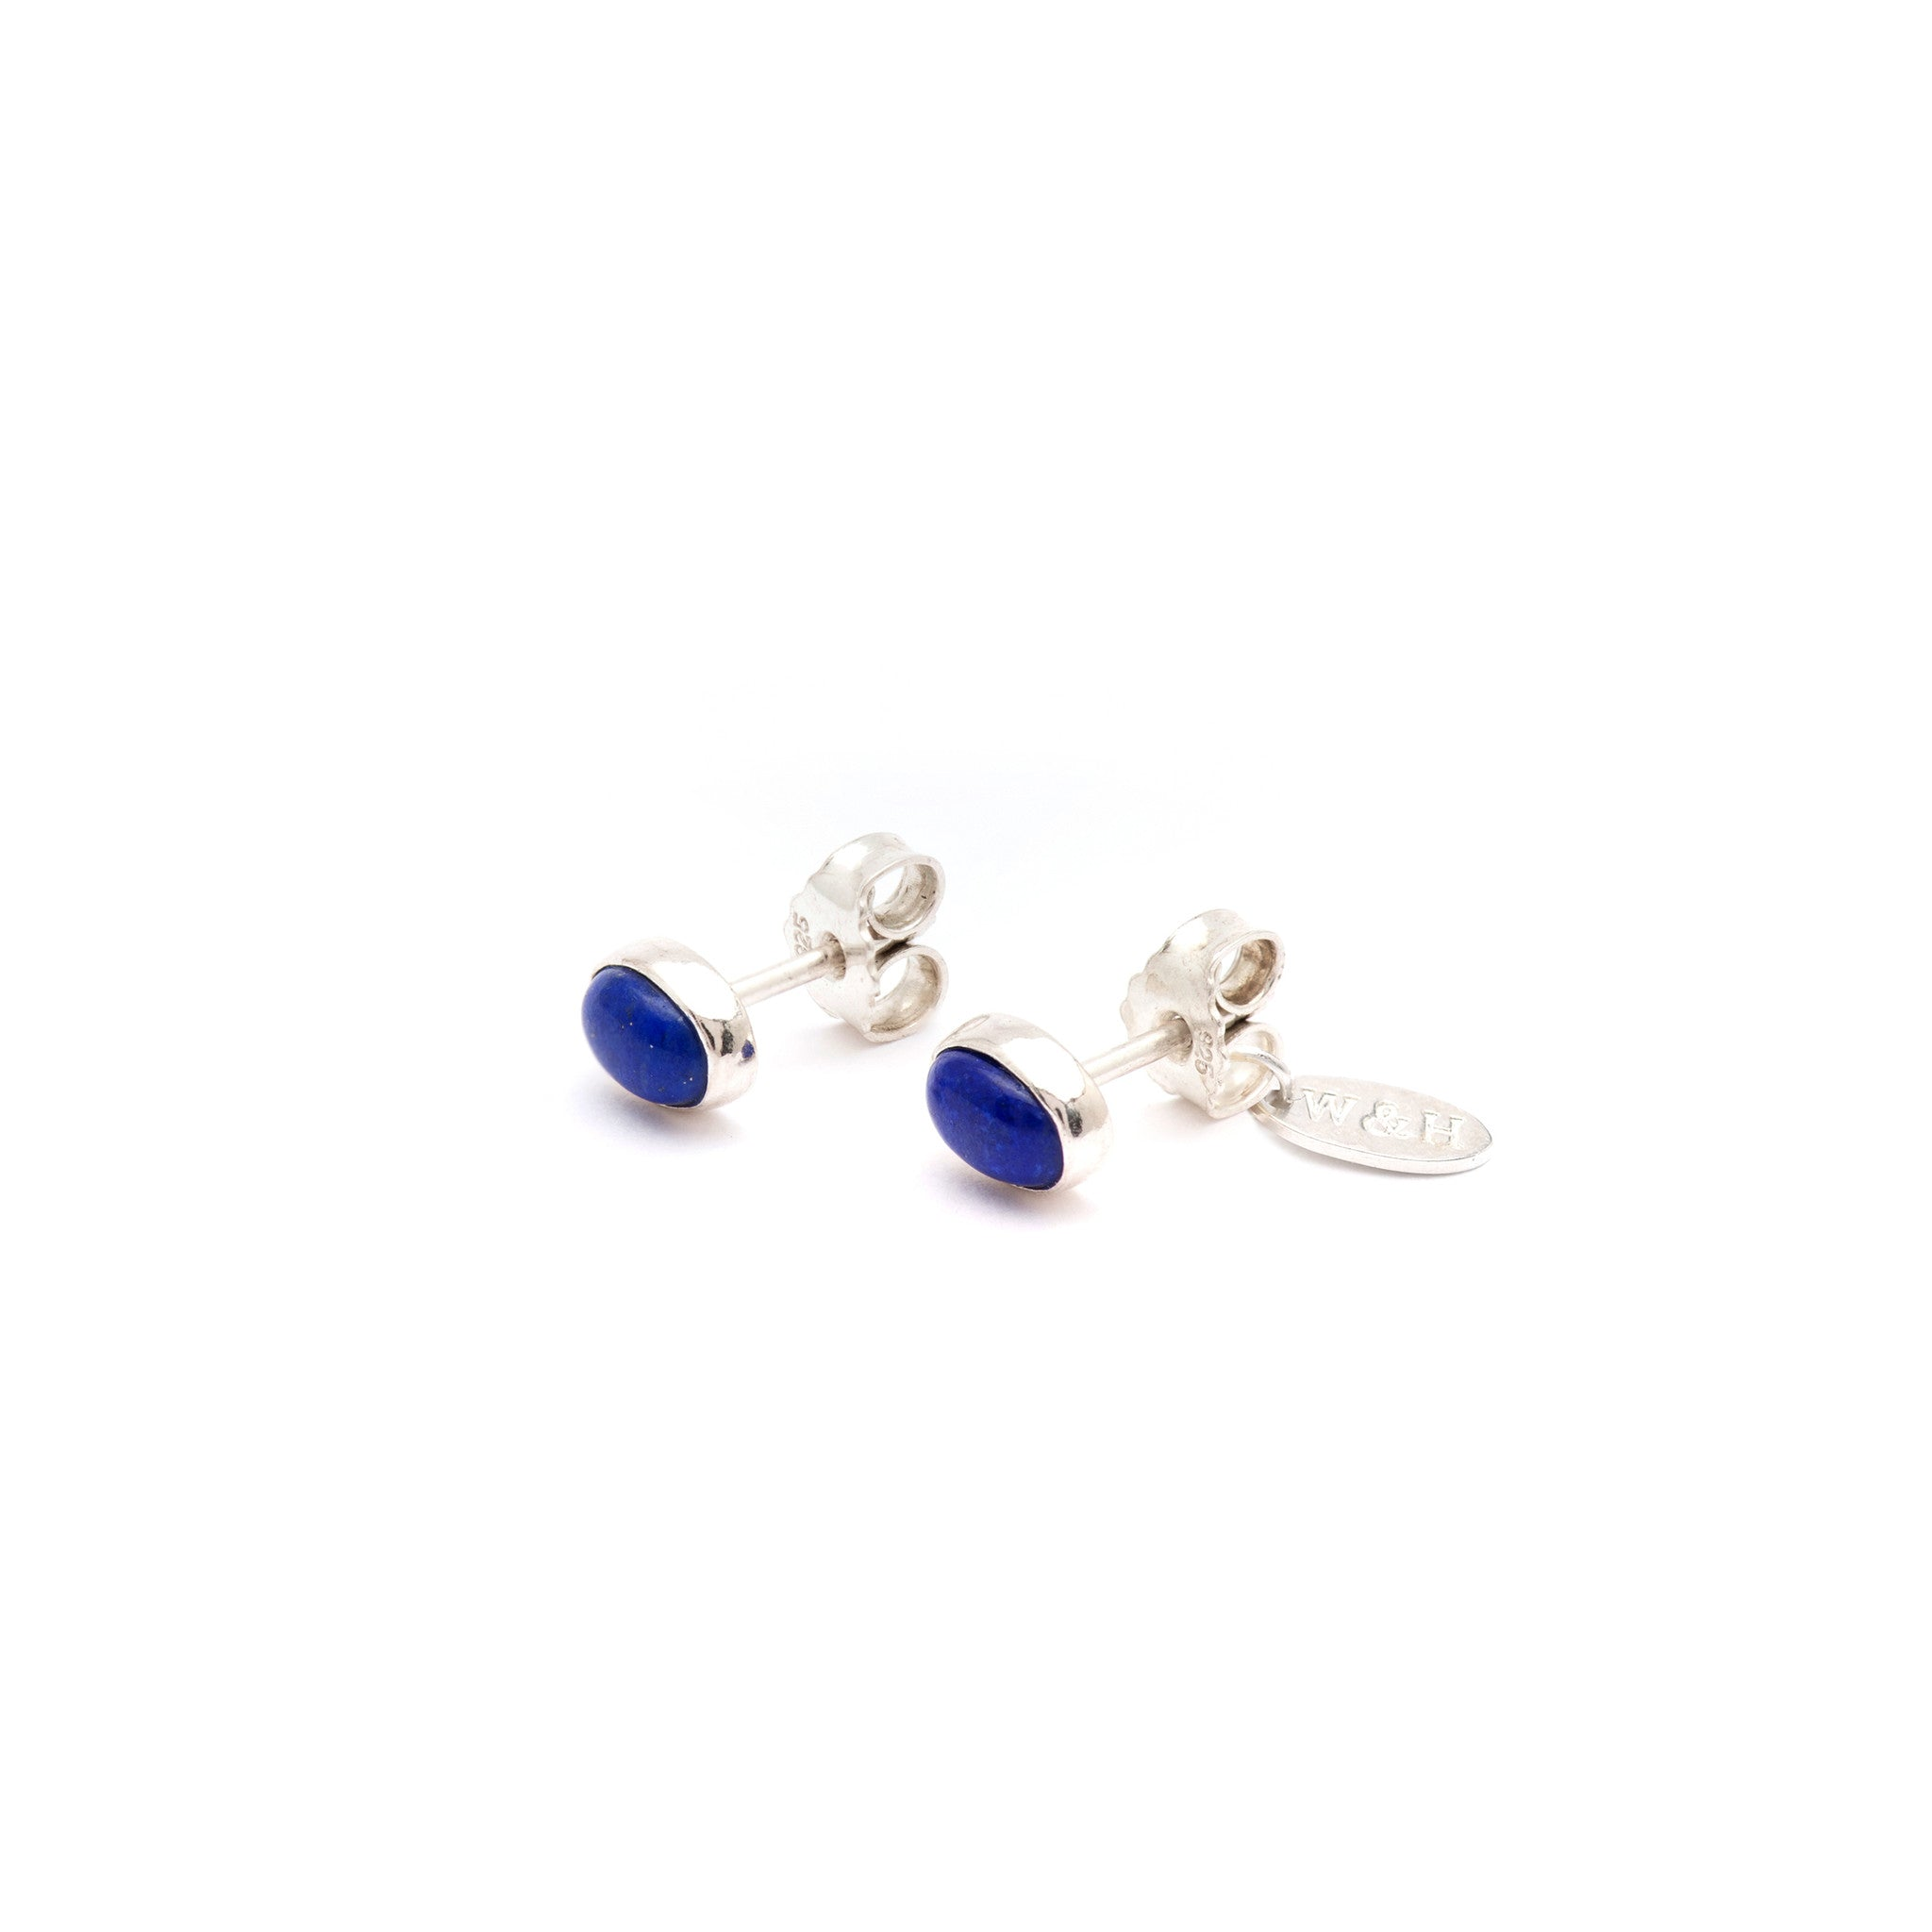 Wouters & Hendrix 18kt gold, diamond and sapphire stud earrings - Blue